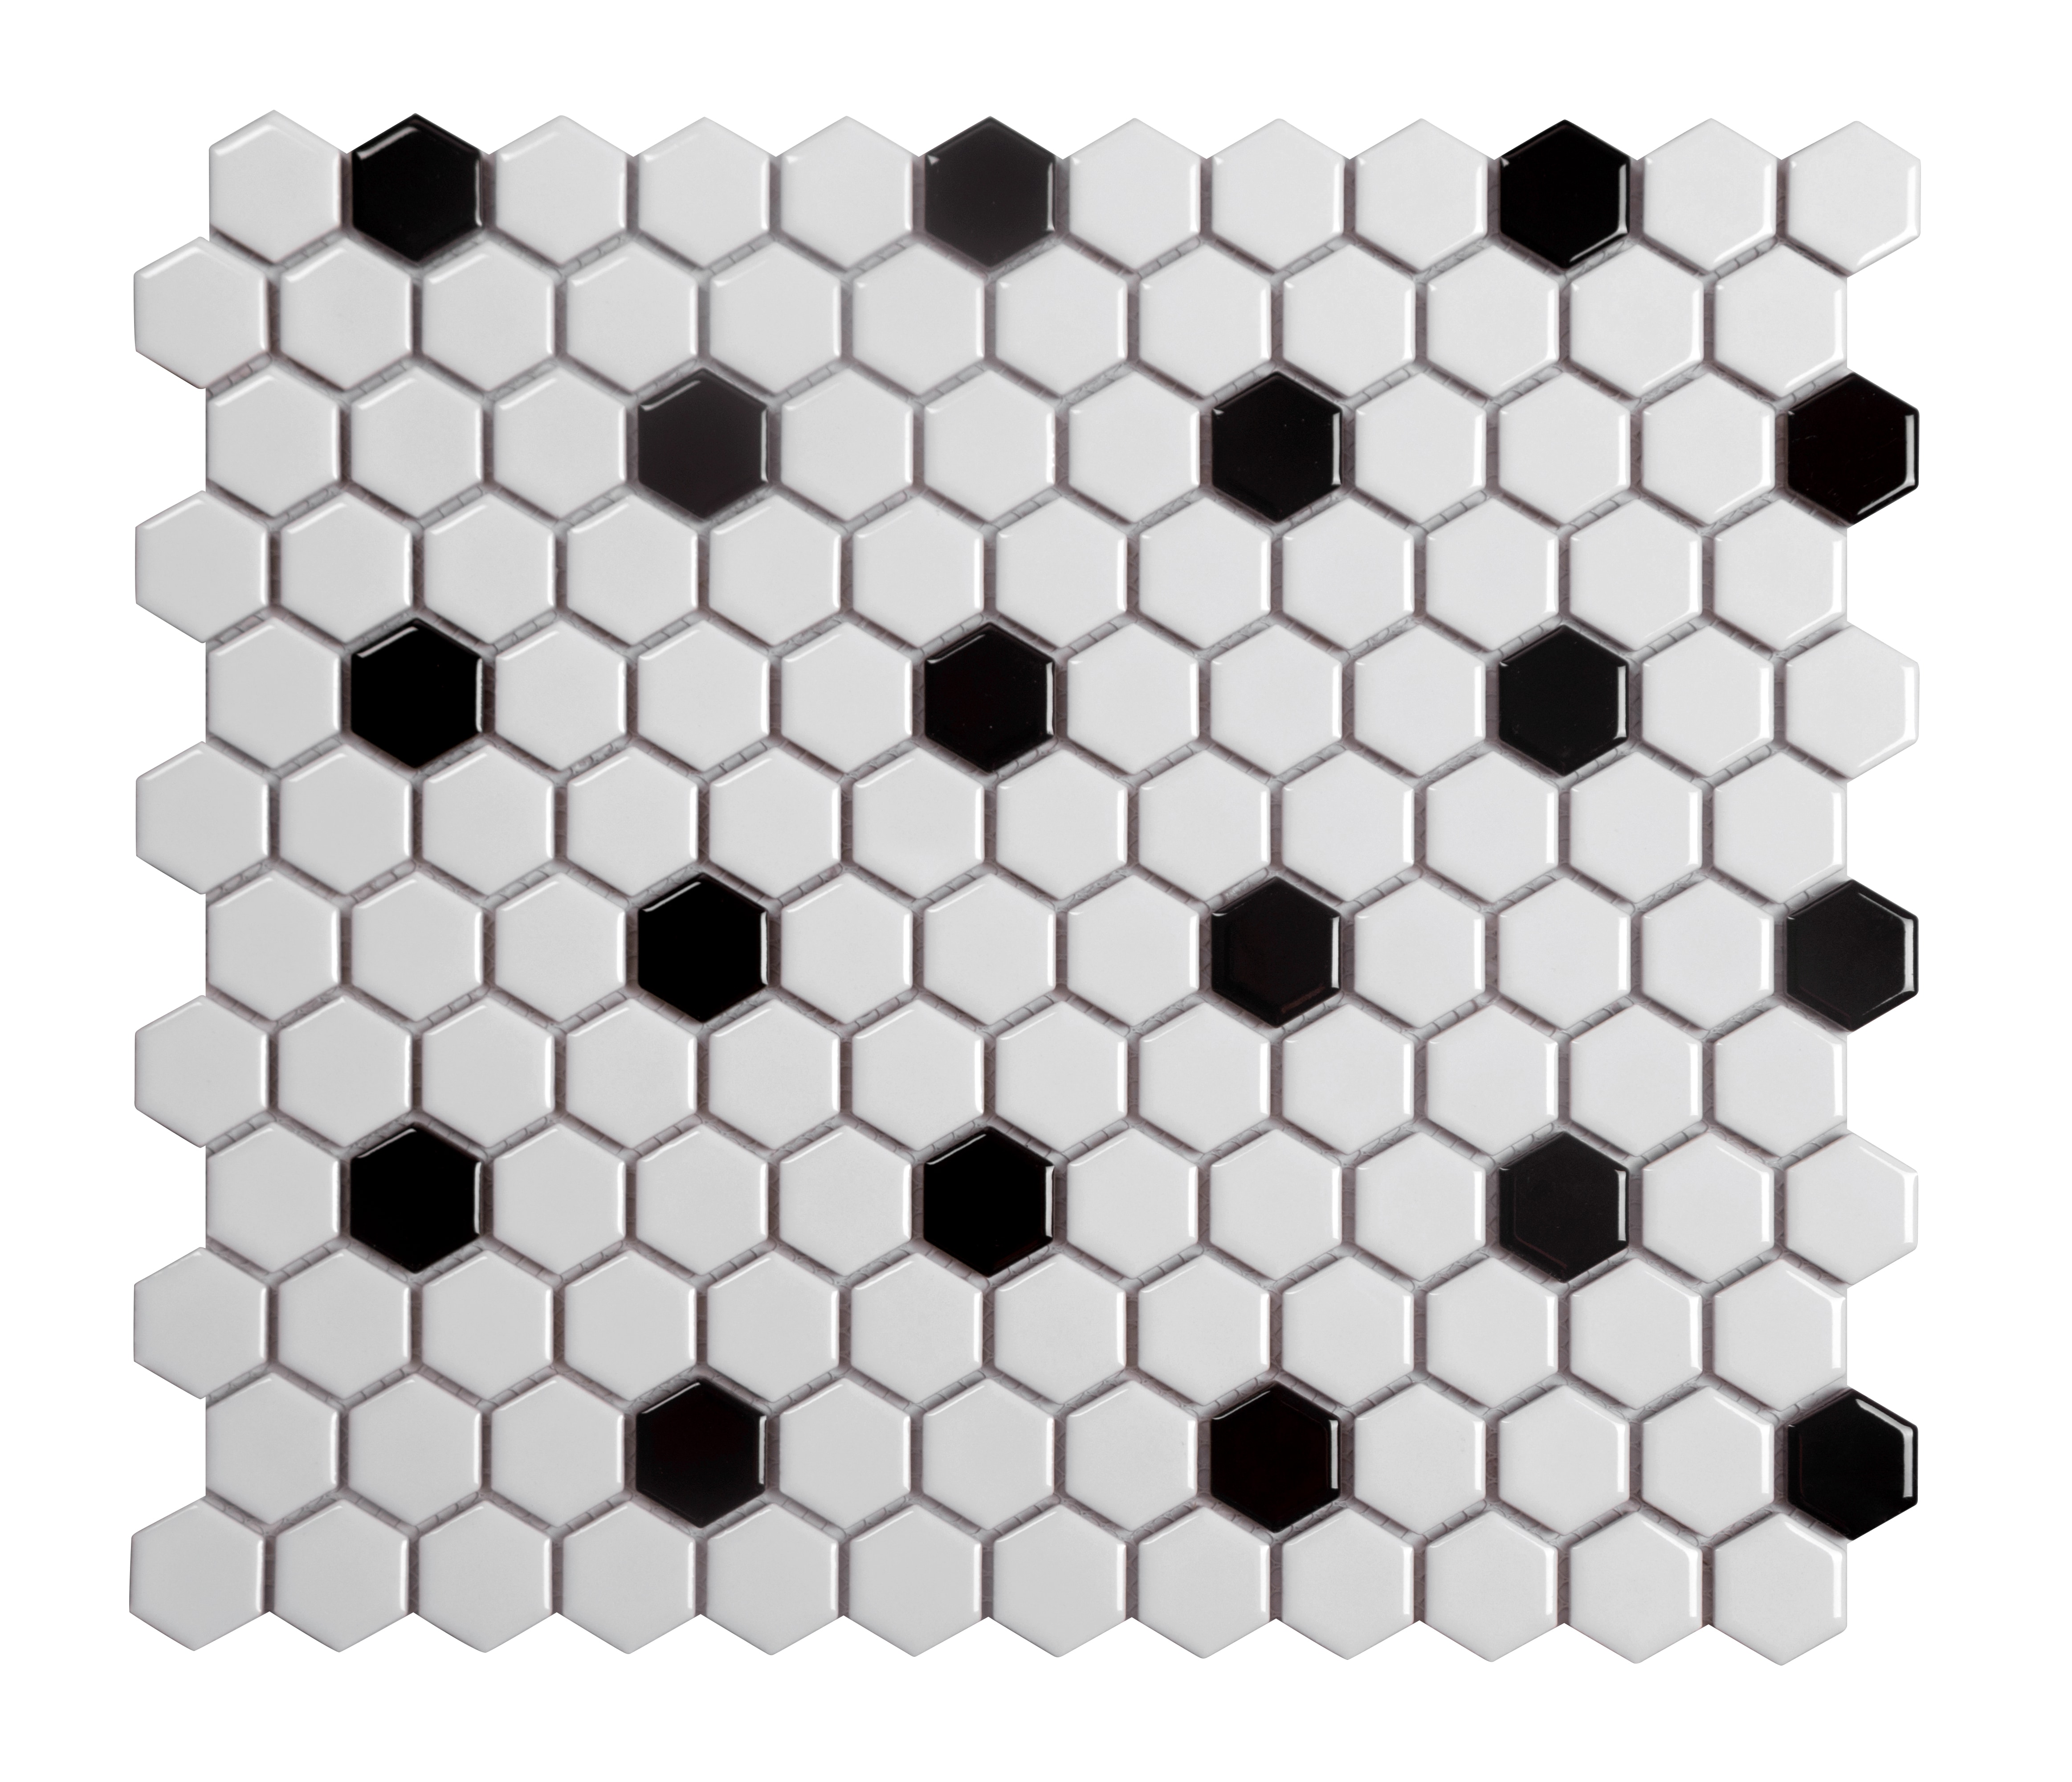 """11.75 x 10.25 x 0.2 inches / Glossy Retro 1"""" Hexagon Porcelain Glossy Wall Tile in White with Black Dot 0"""